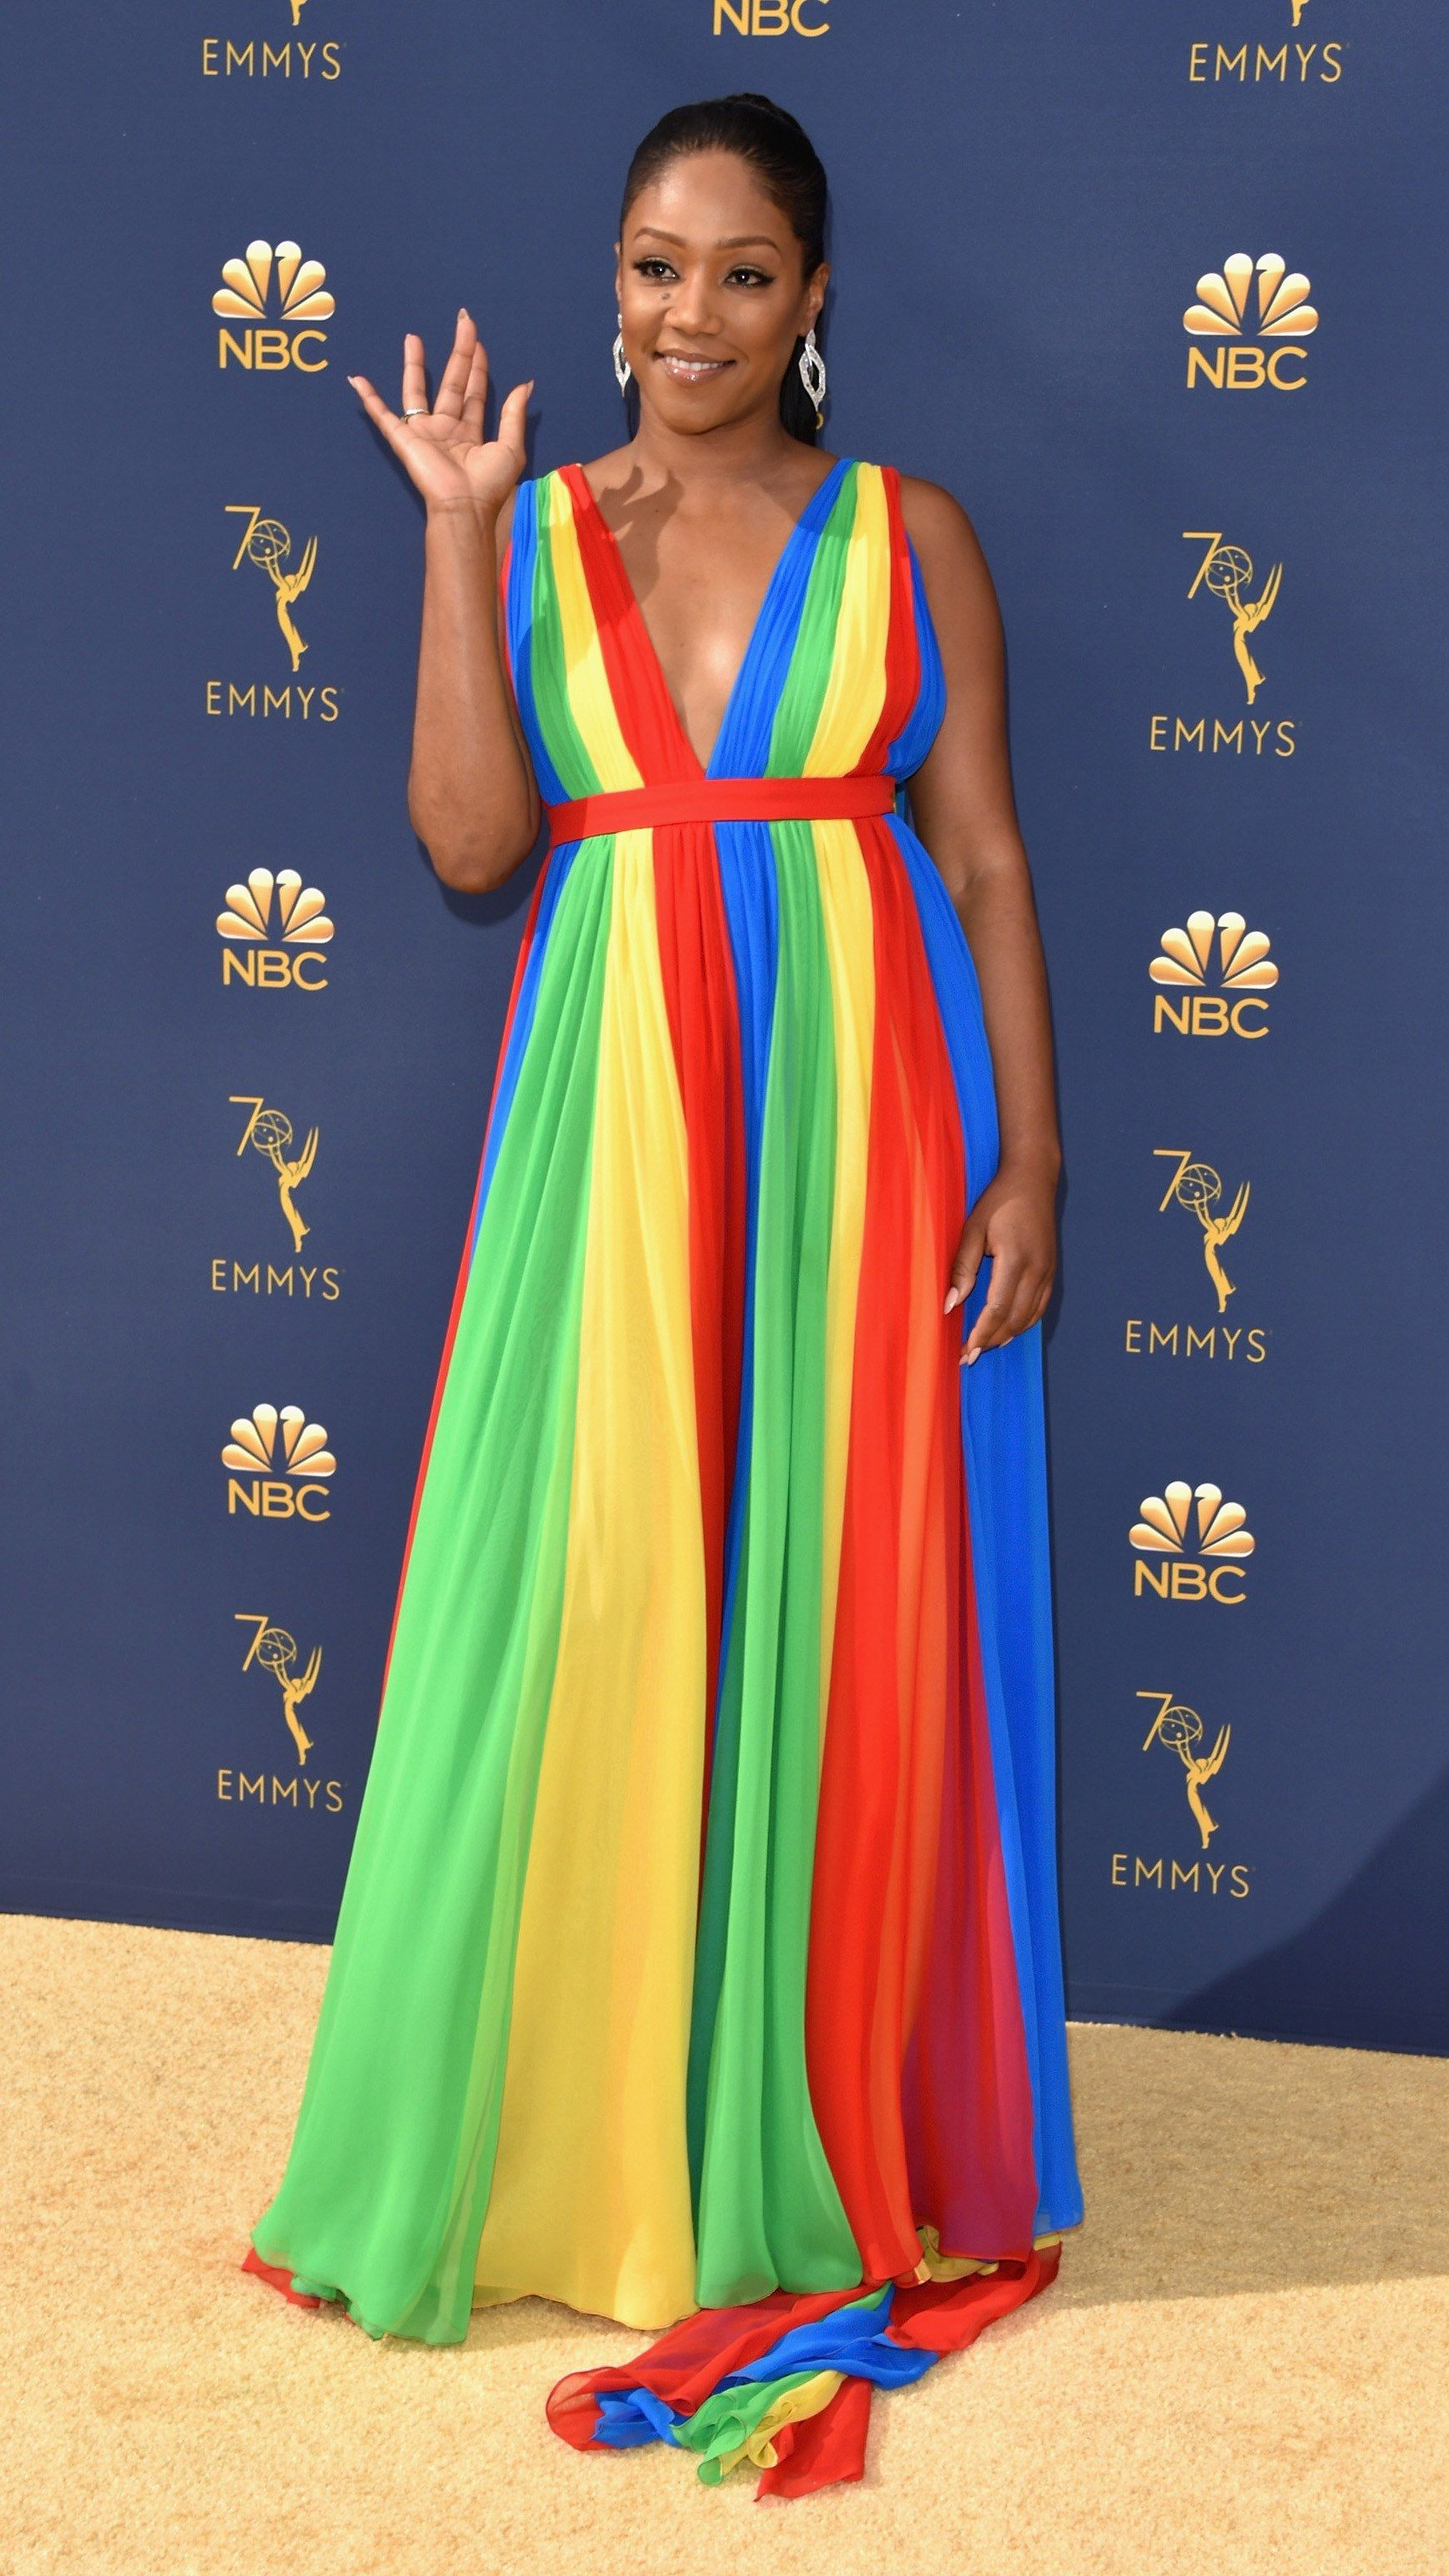 Tiffany Haddish's Colorful Dress for the Emmy Awards Has a